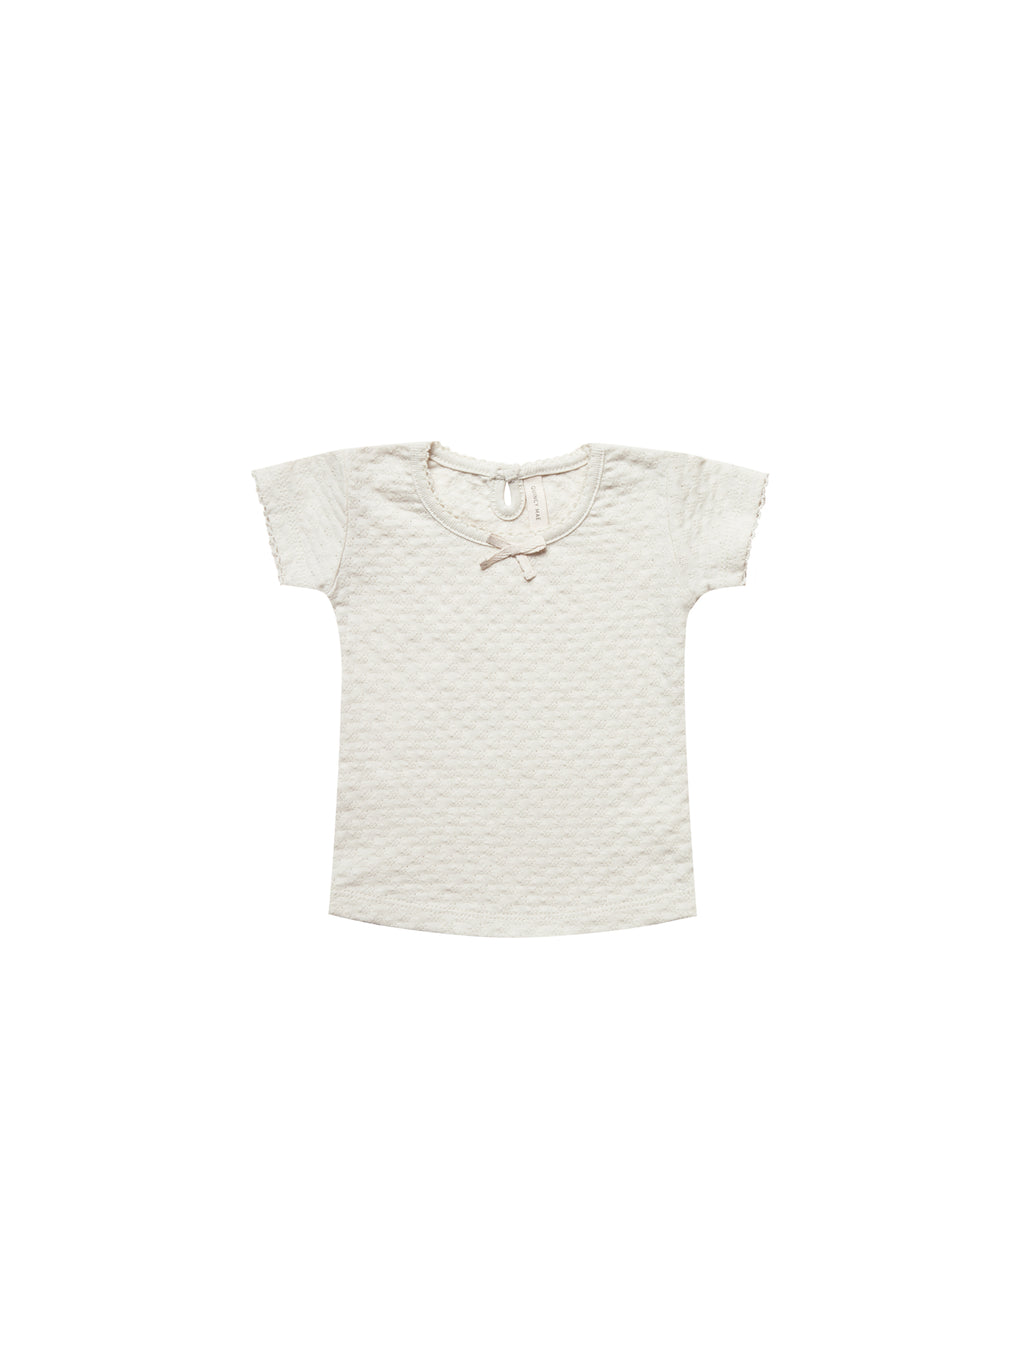 Quincy Mae Pointelle Tee - Pebble